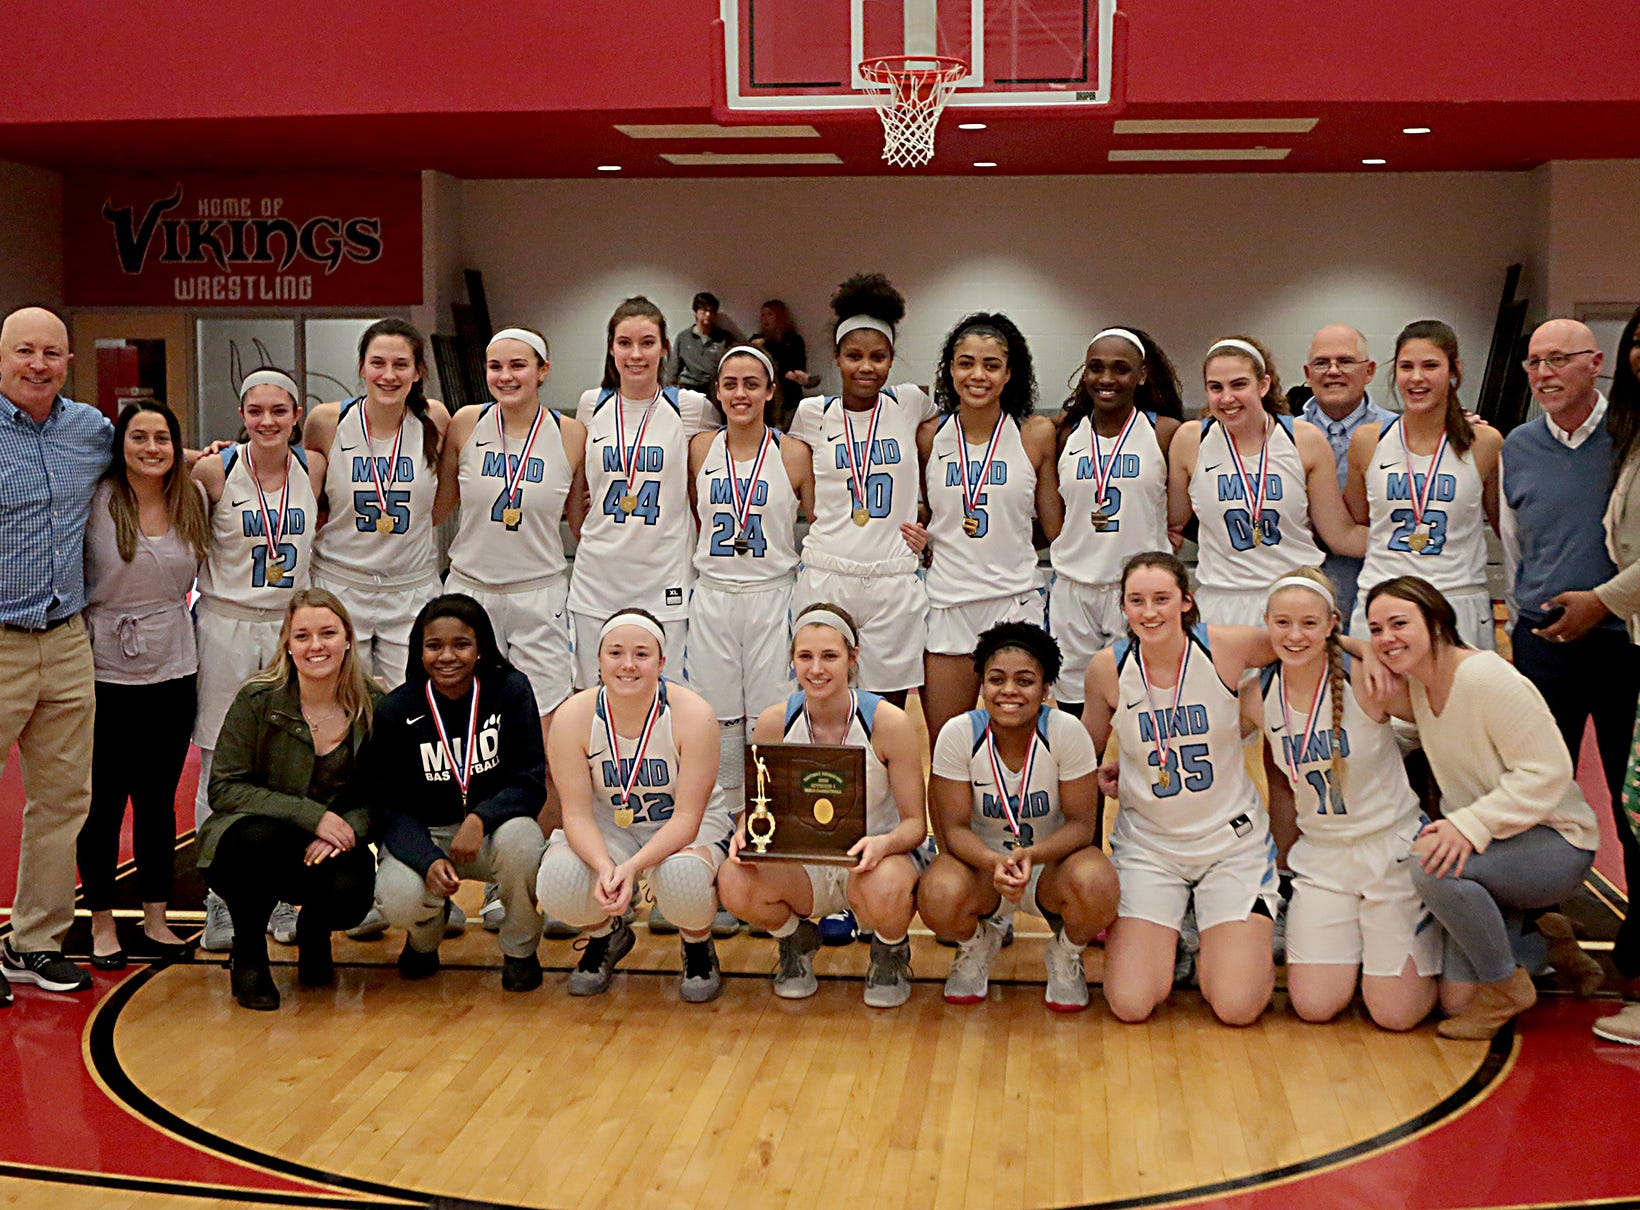 The Mt. Notre Dame girls celebrate with their trophy after defeating Kettering Fairmont in their Southwest District Girls Division I finals at Princeton High School in Cincinnati Saturday, March 2, 2019.